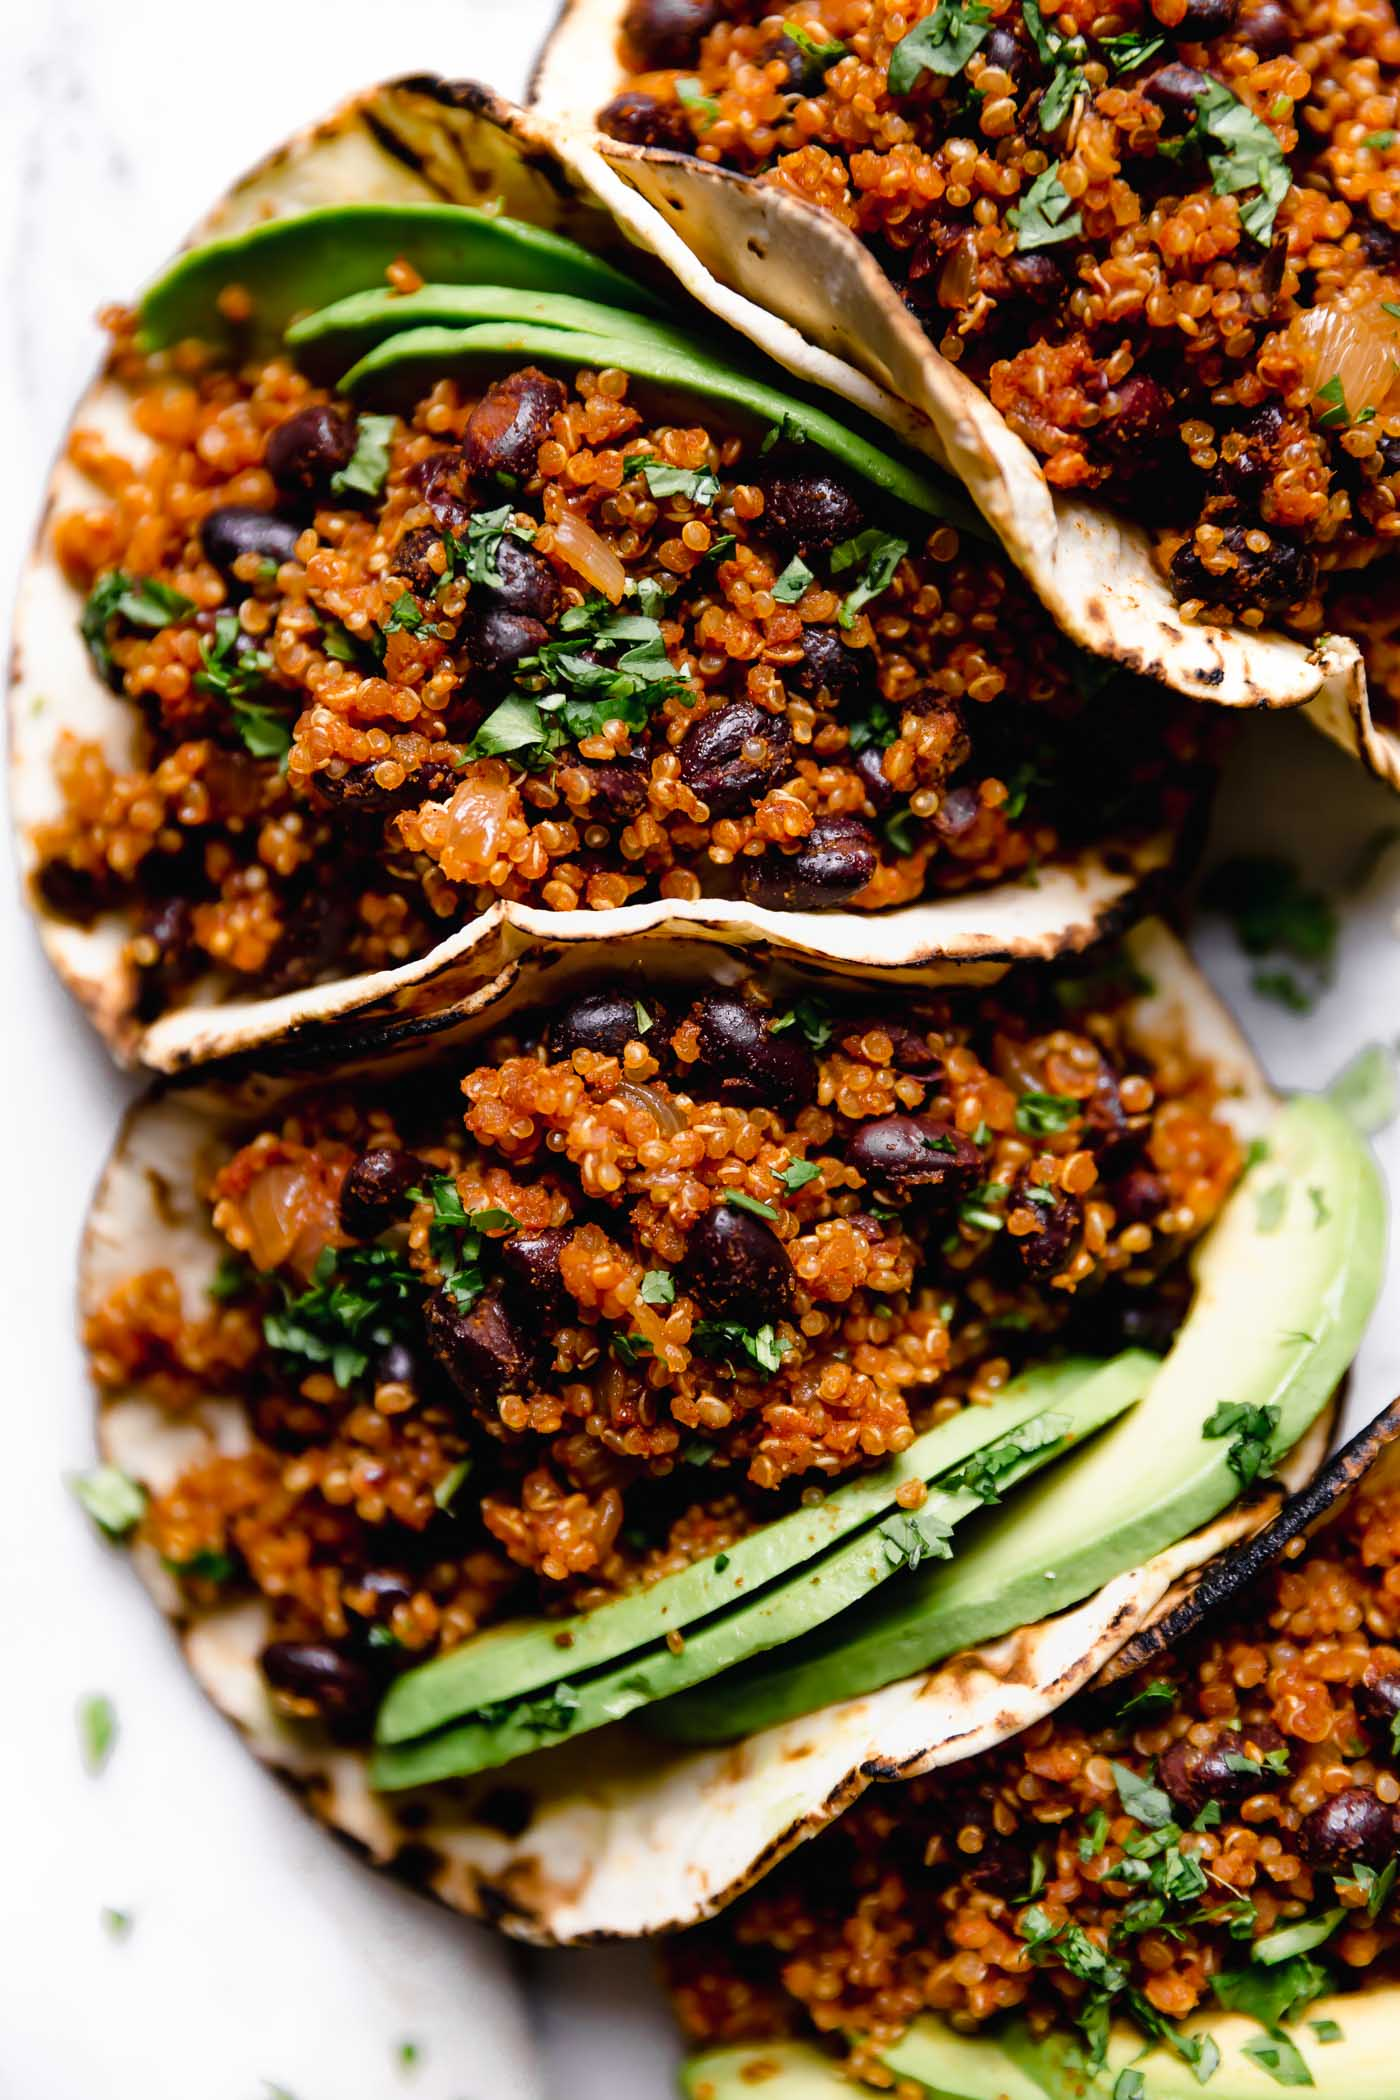 Quinoa & Black Bean Tacos arranged on a marble board, topped with chopped cilantro. There are a few lime wedges surrounding the tacos, along with a small blue bowl with the cilantro lime crema.